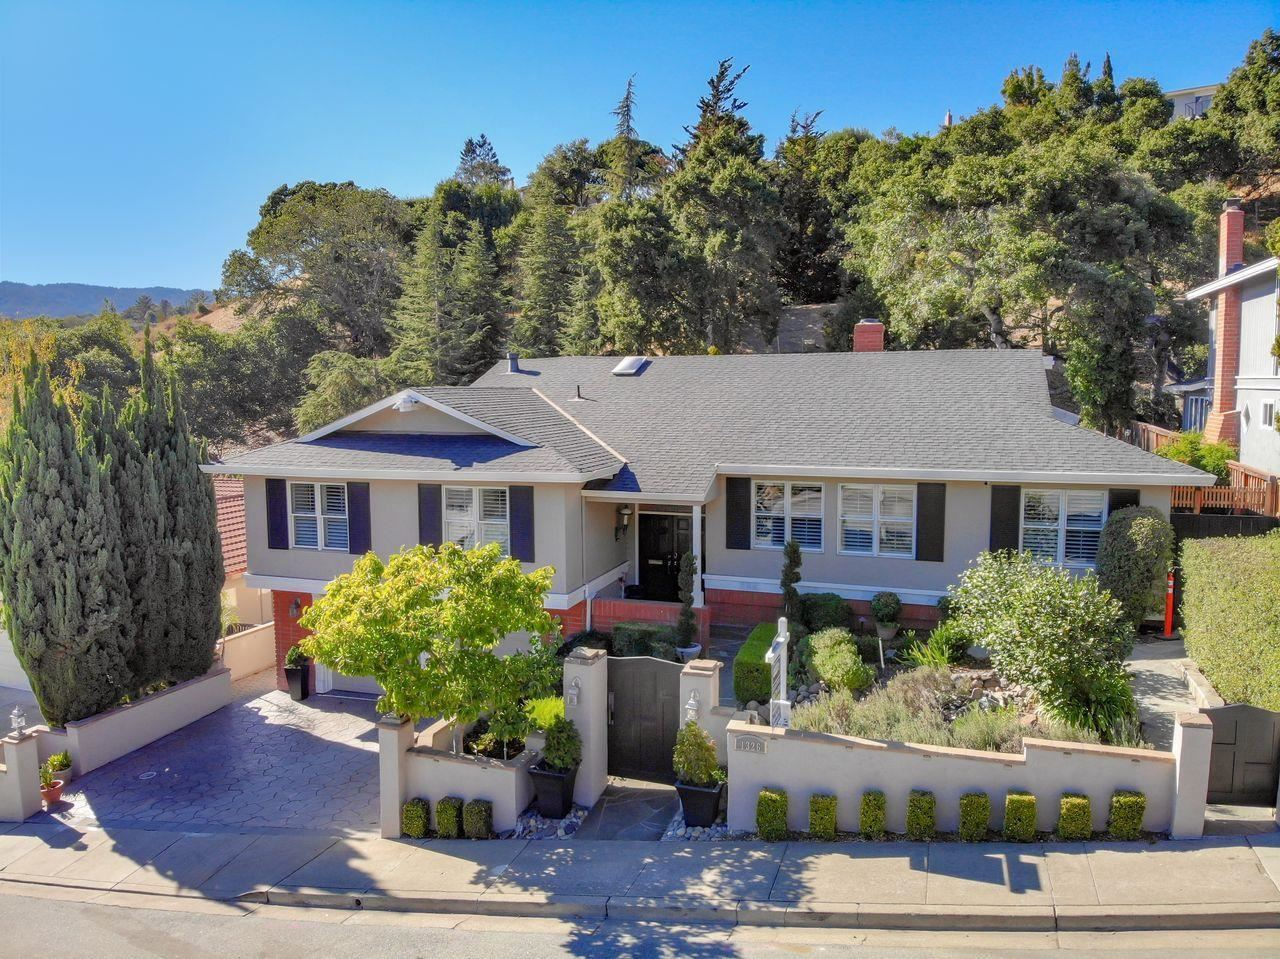 Photo for 1326 Crestview DR, SAN CARLOS, CA 94070 (MLS # ML81779162)